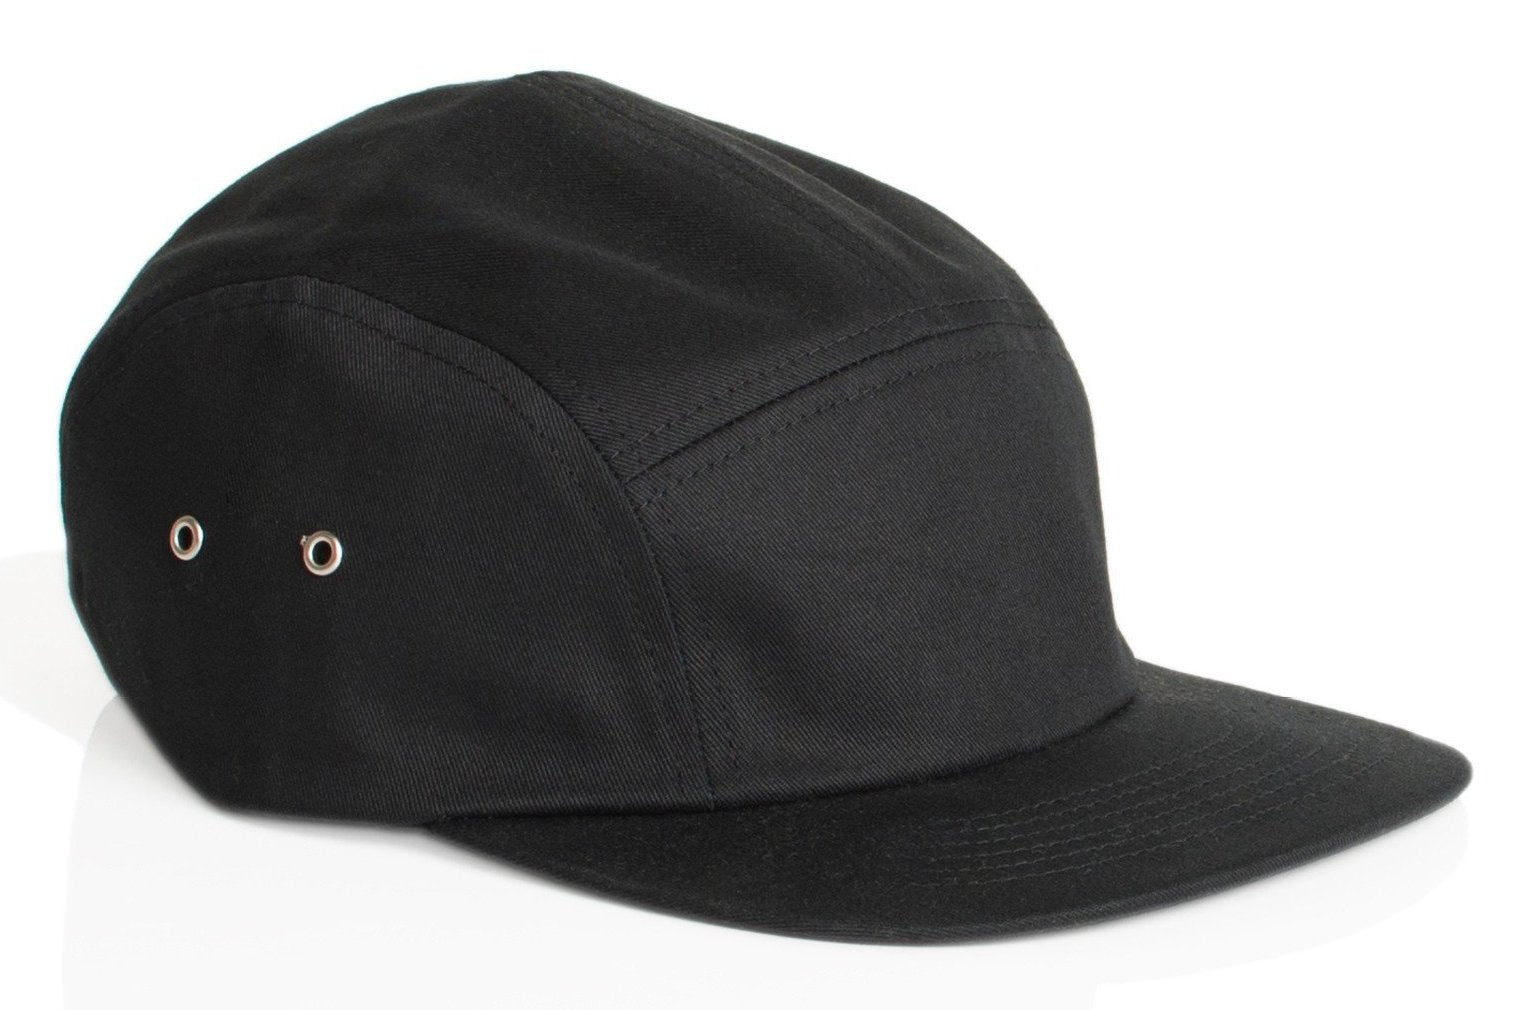 Finn Five Panel Cap - AS Colour 1103